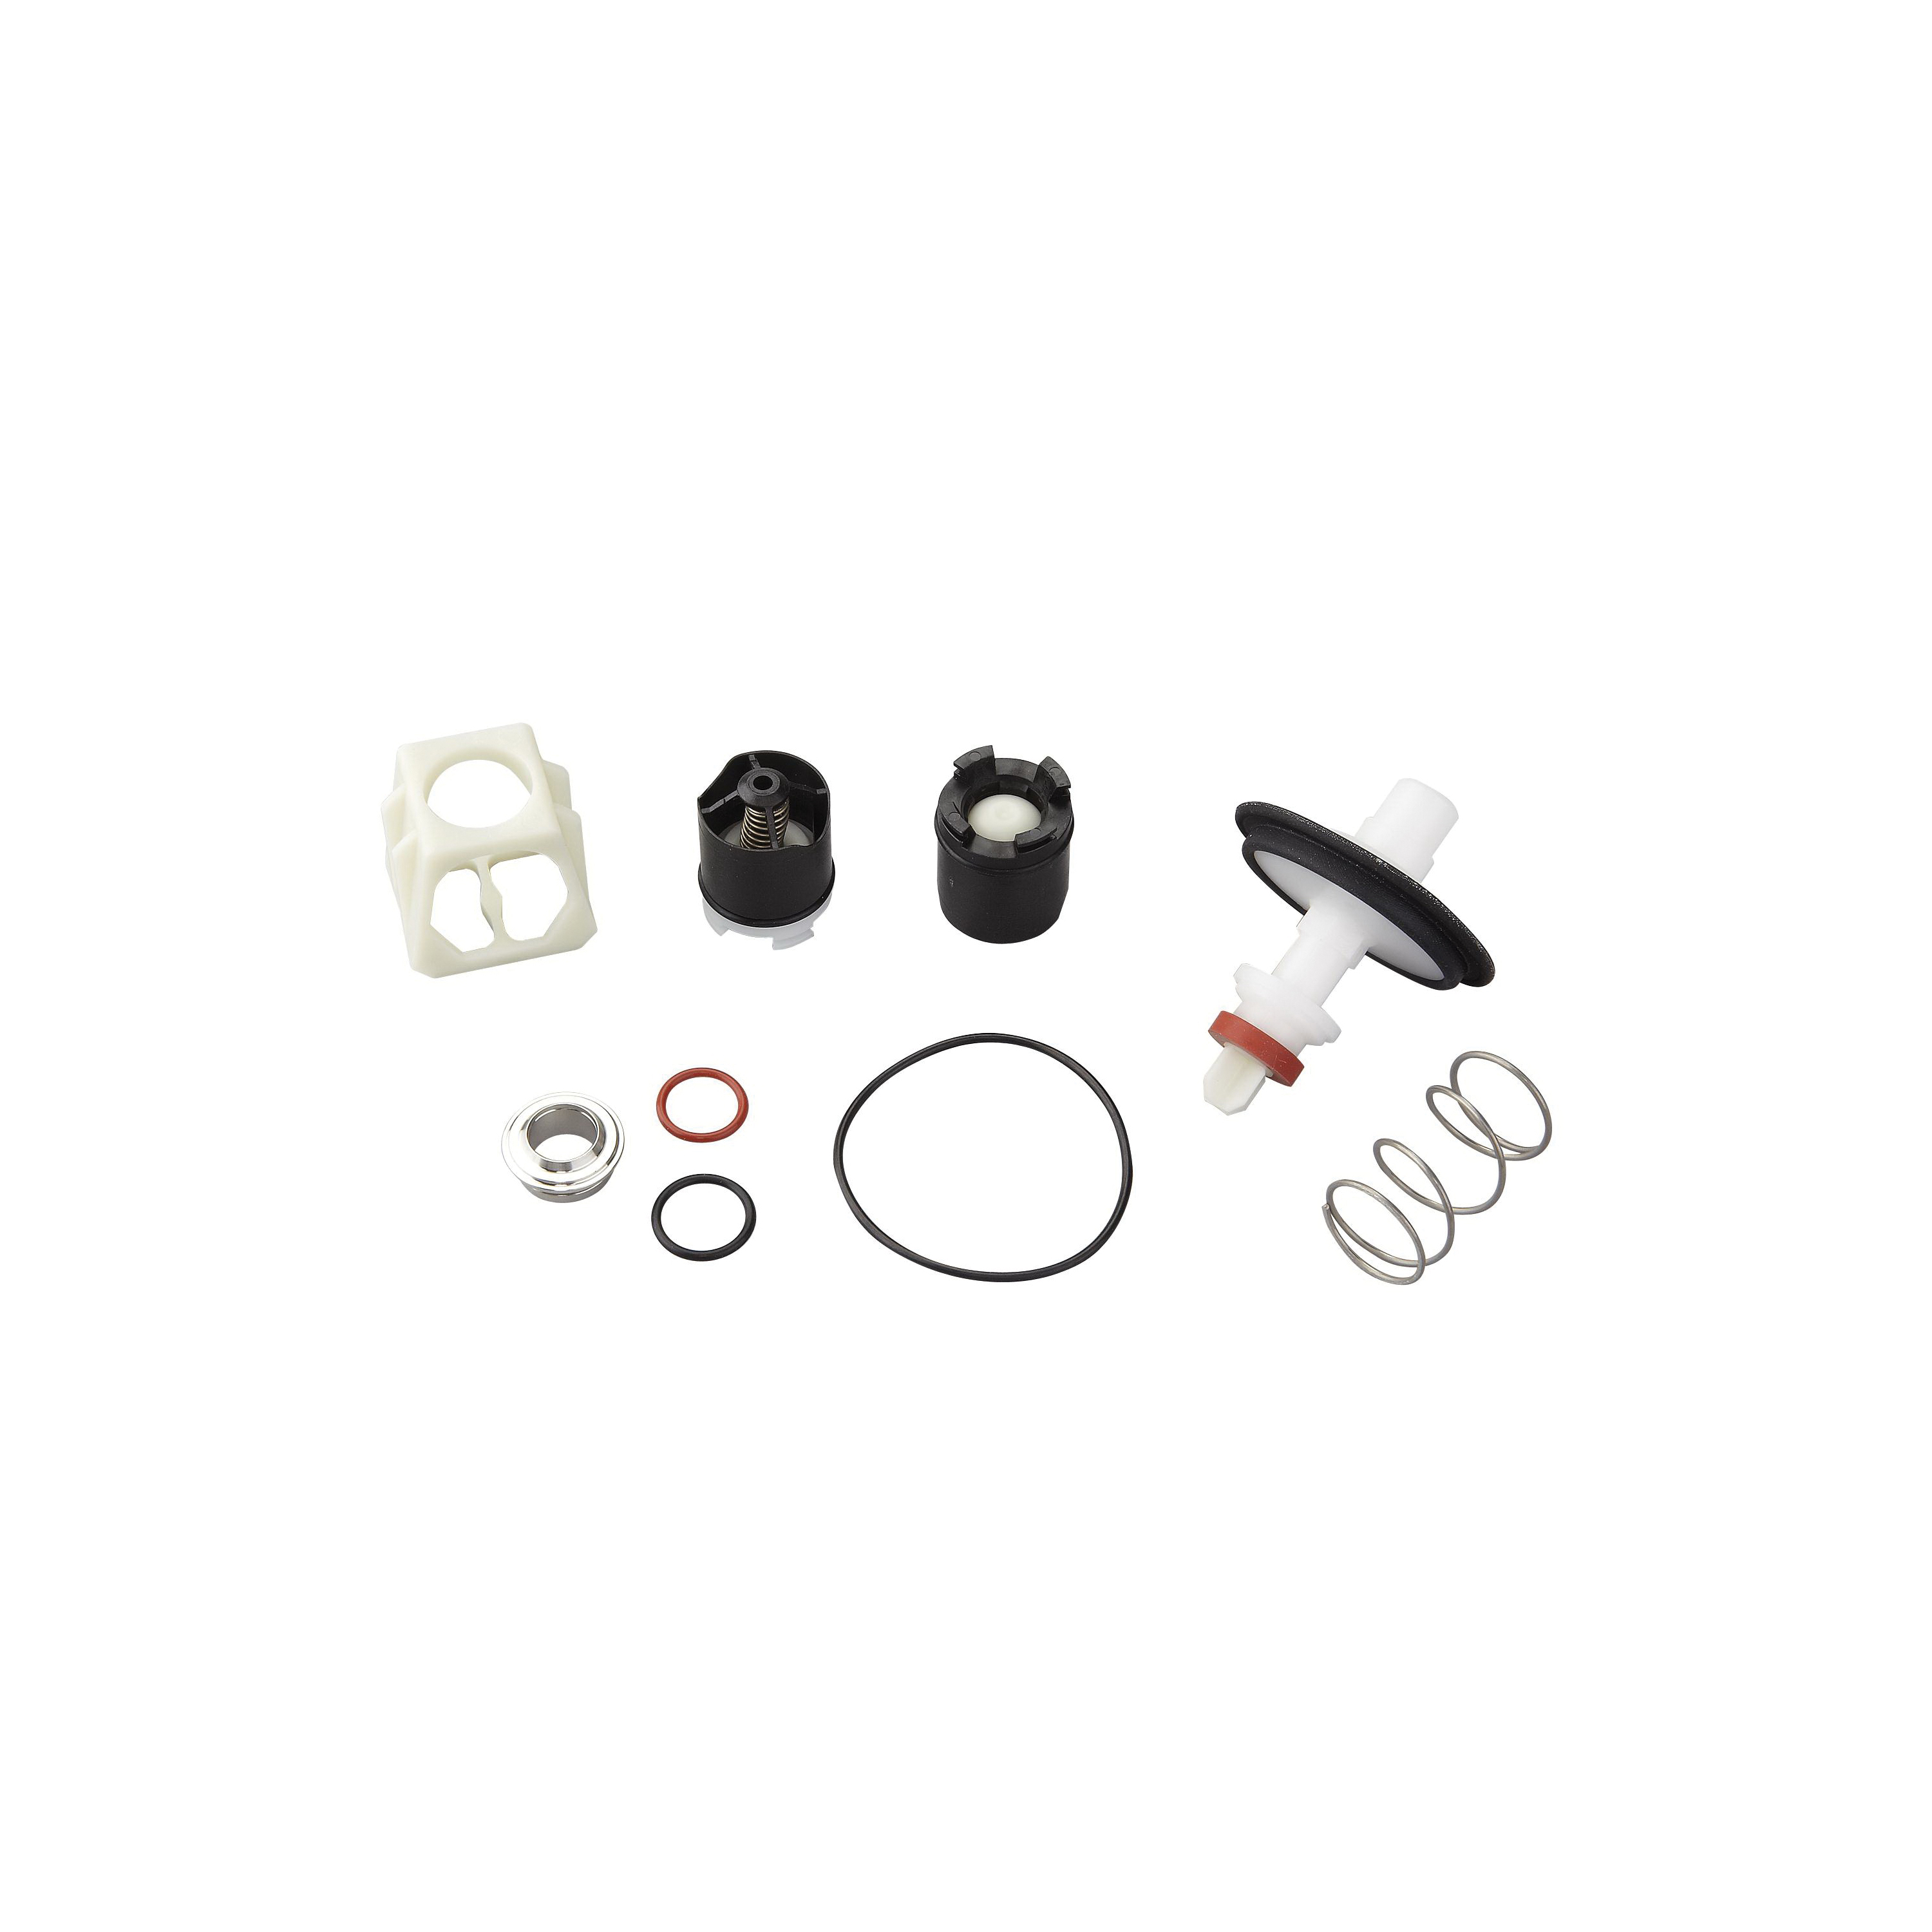 "0887298 WATTS RK-009T 1/4-1/2"" TOTAL REPAIR KIT"